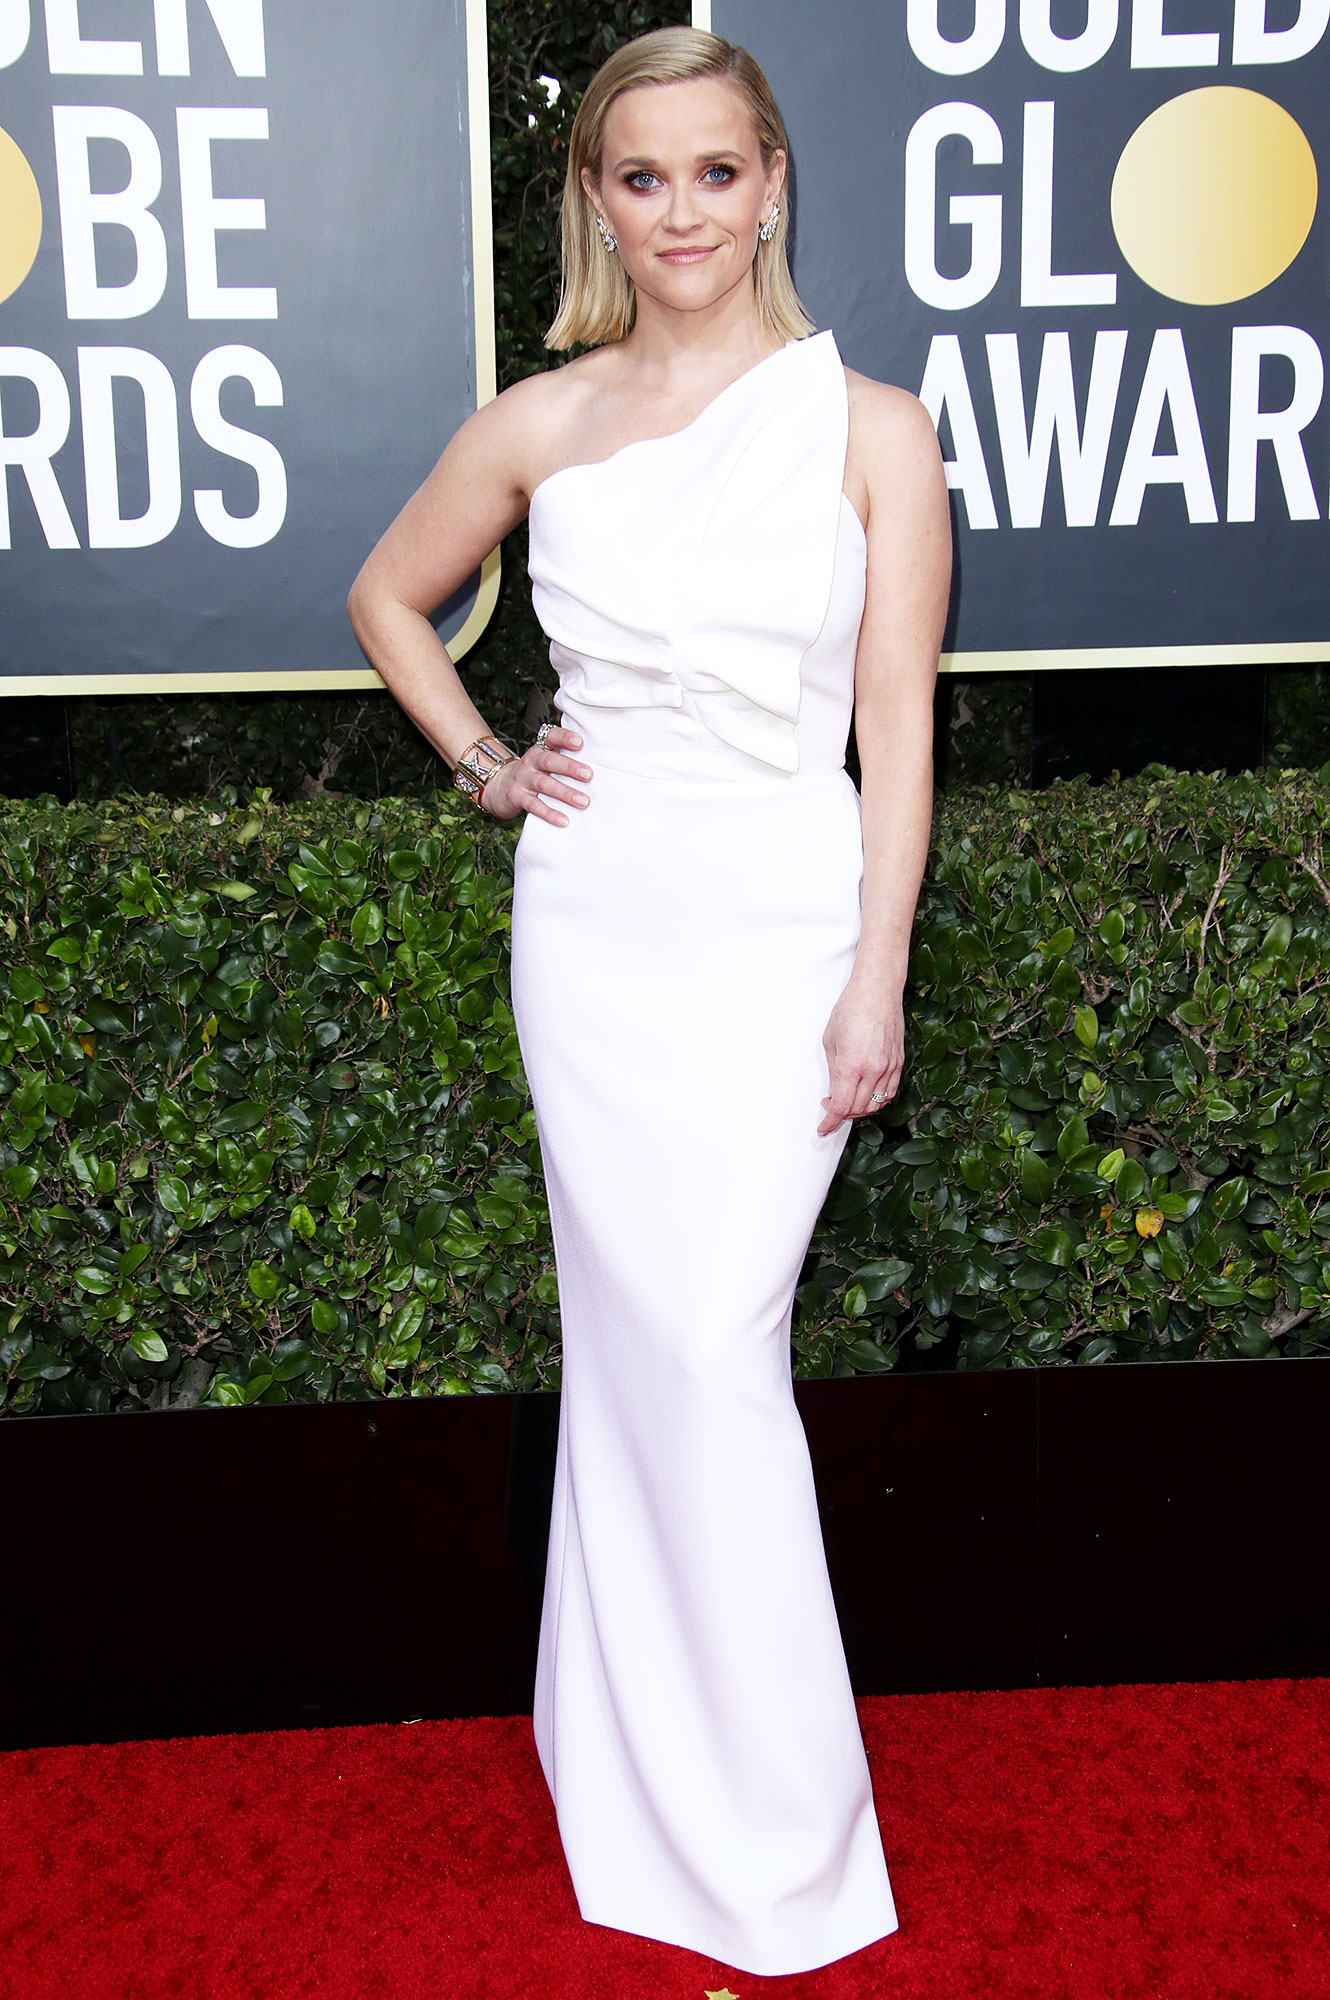 Golden Globes 2020 Best Dressed Top Celeb Gowns, Dresses